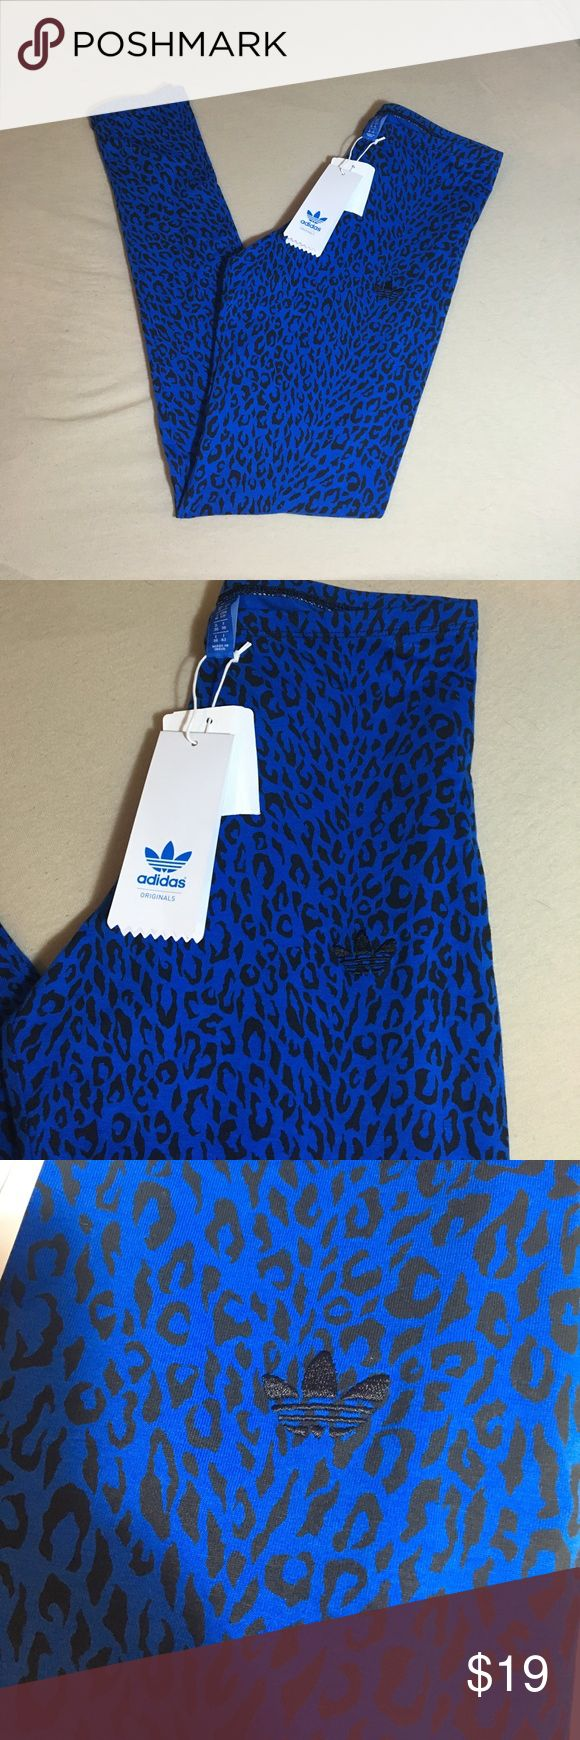 NWT Blue cheetah print adidas leggings These leggings are new with tags and super adorable and ten by! They are dark blue and have black cheetah or leaped print with a black adidas logo embroidered in! They're new with the tags. Size small. I ❤️ offers! adidas Pants Leggings